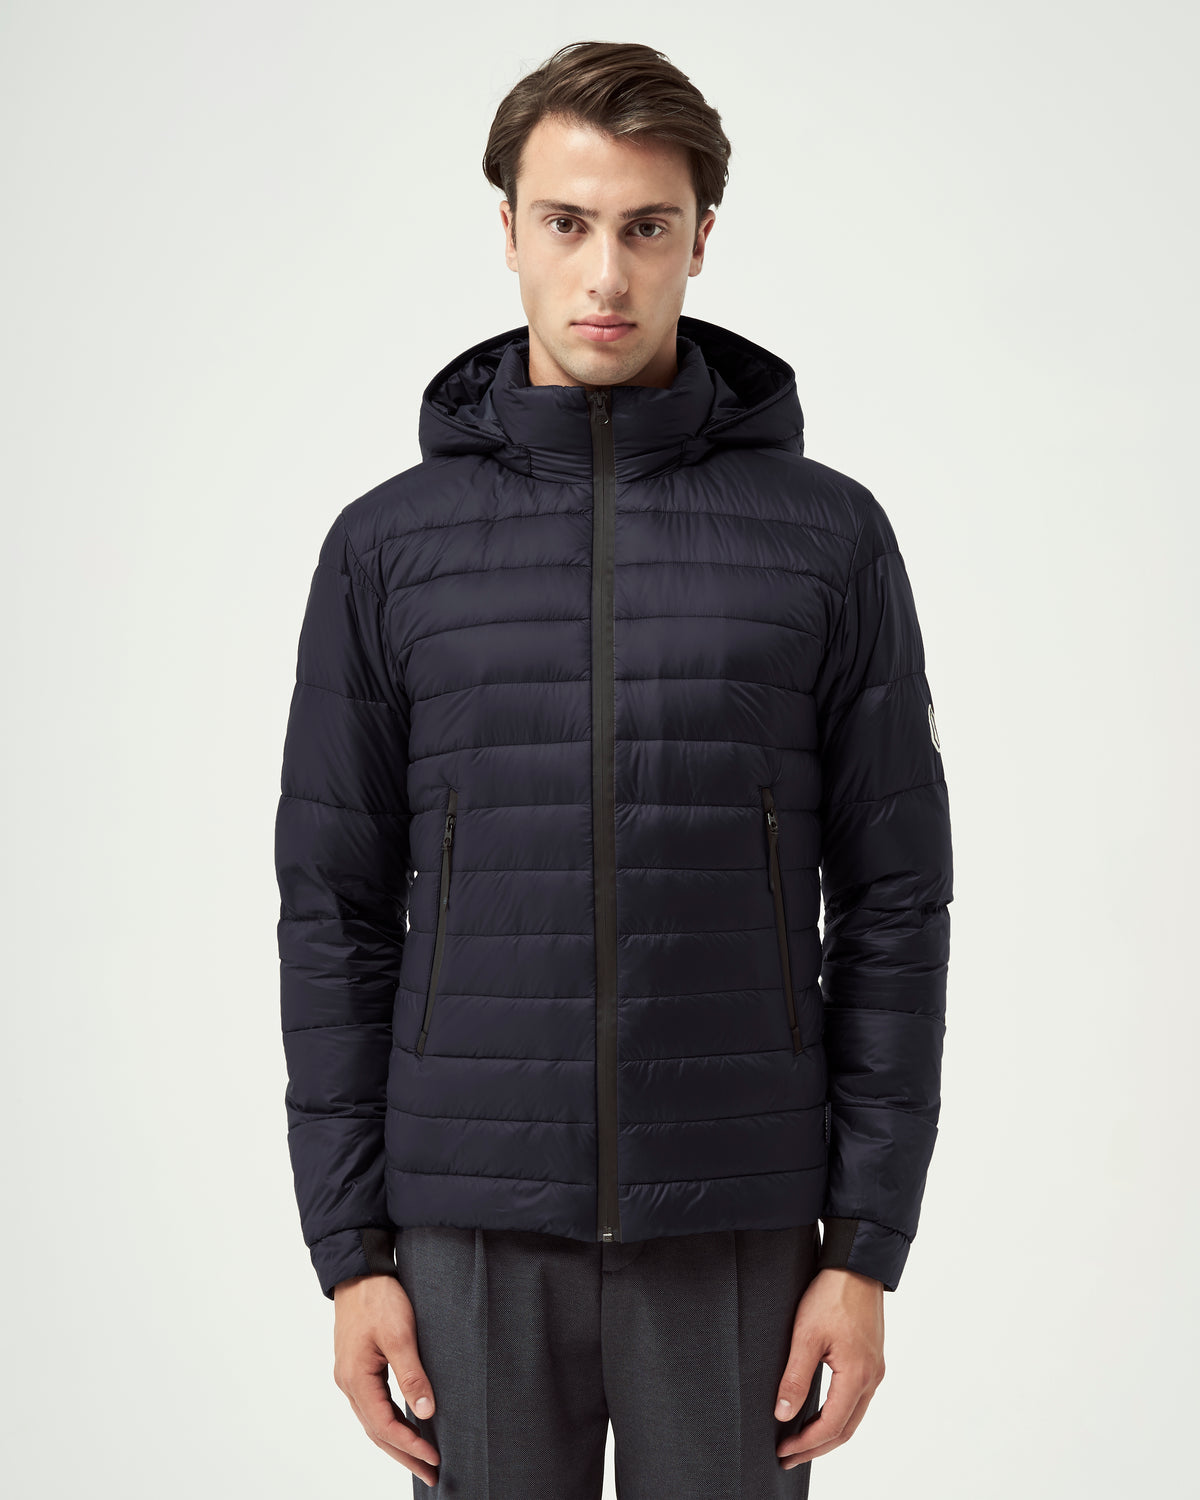 Quartz Co. - Canadian Made Winter Jackets | Lans | Men Down Lightweight Jacket | Moonlight Ocean